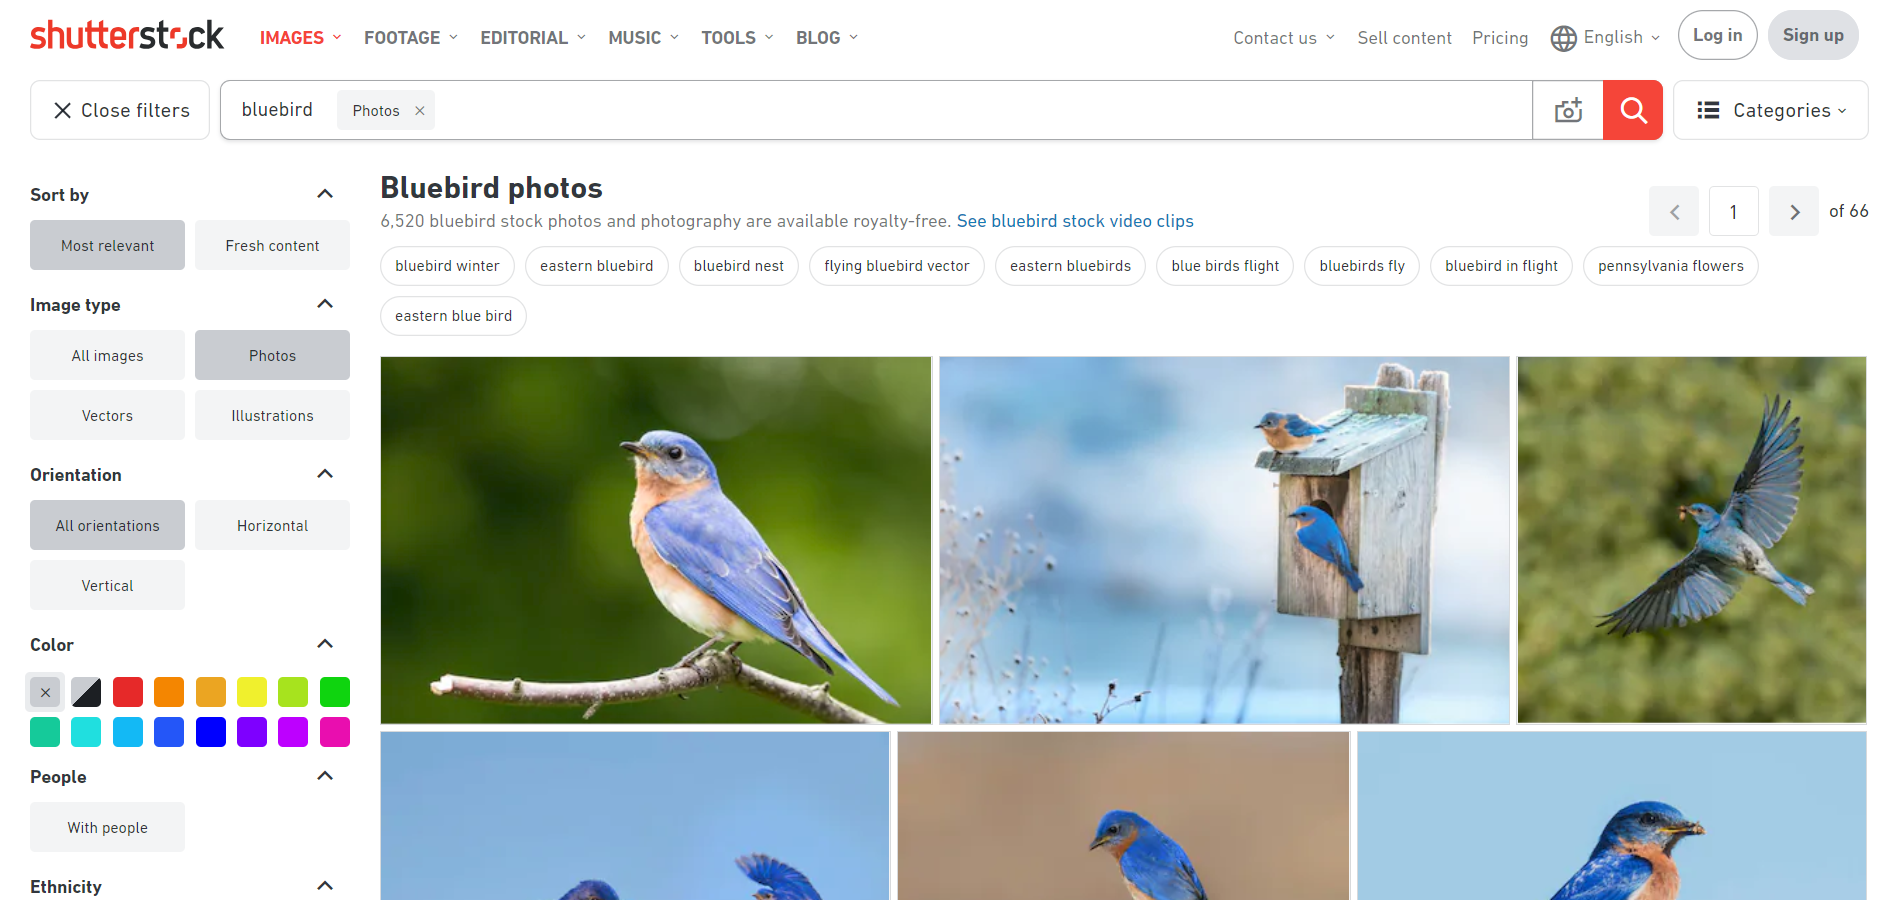 The 10 Best Image Search Engines